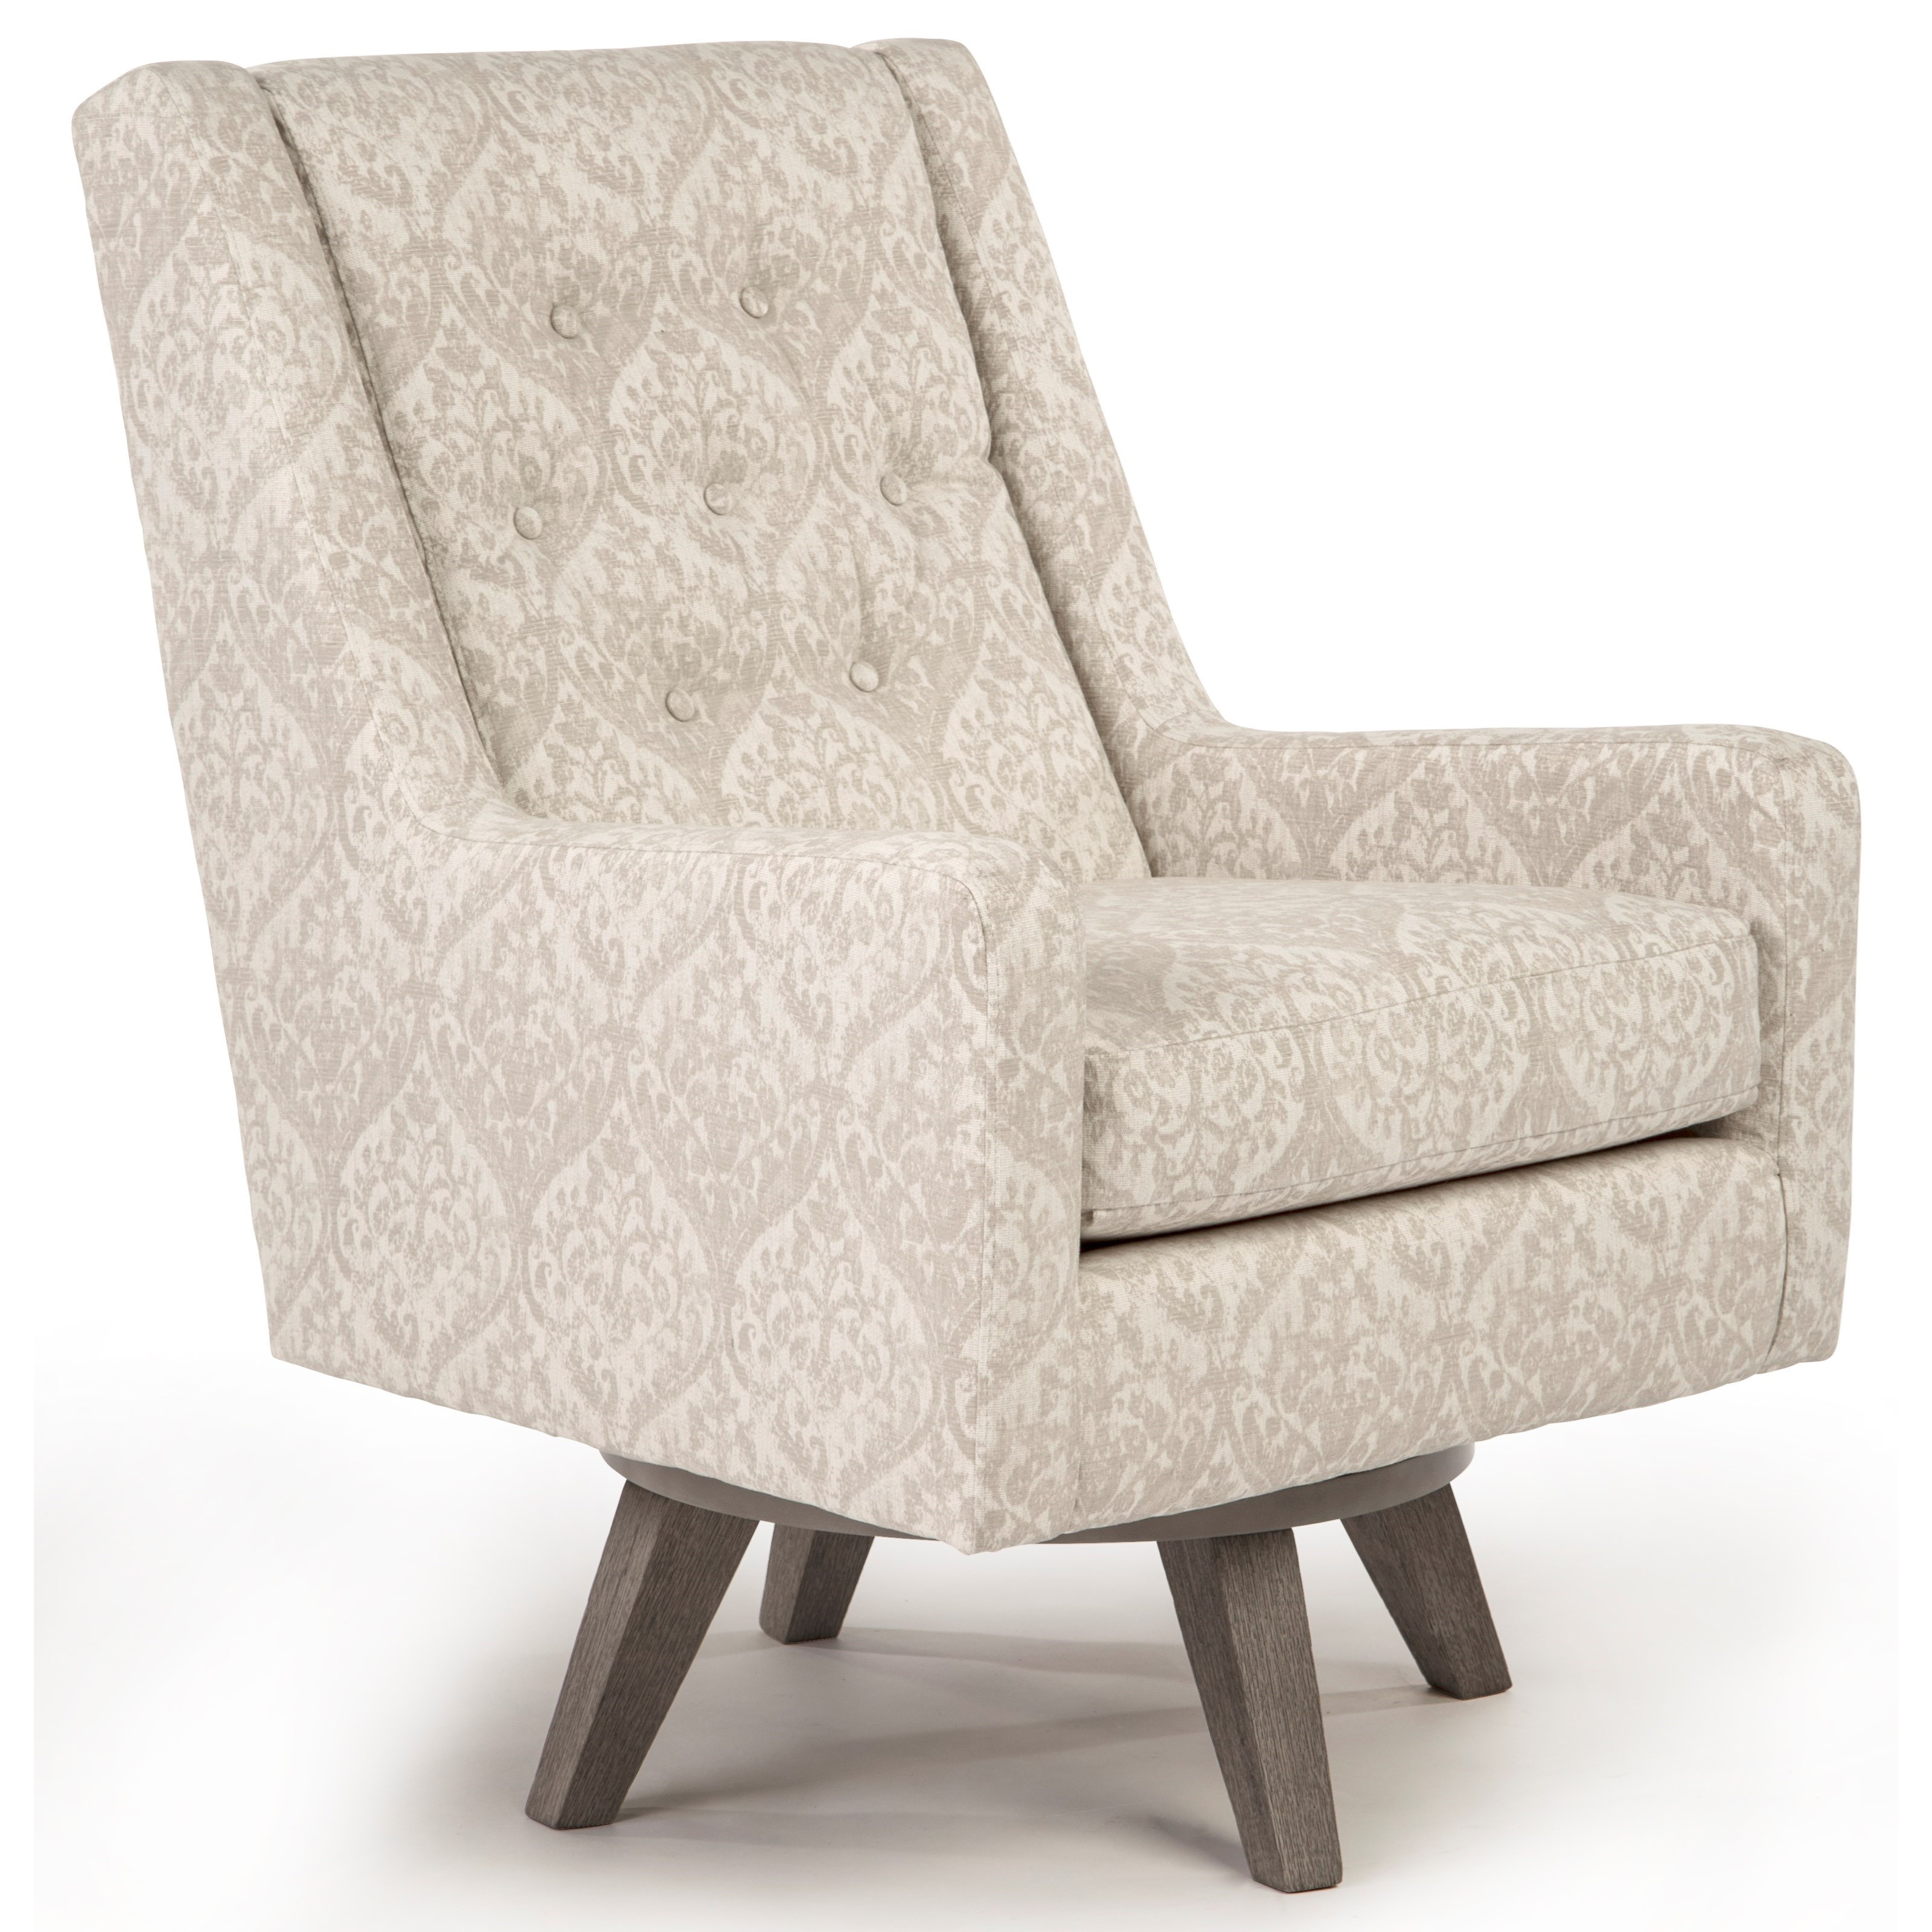 Kale Swivel Chair by Best Home Furnishings at Alison Craig Home Furnishings